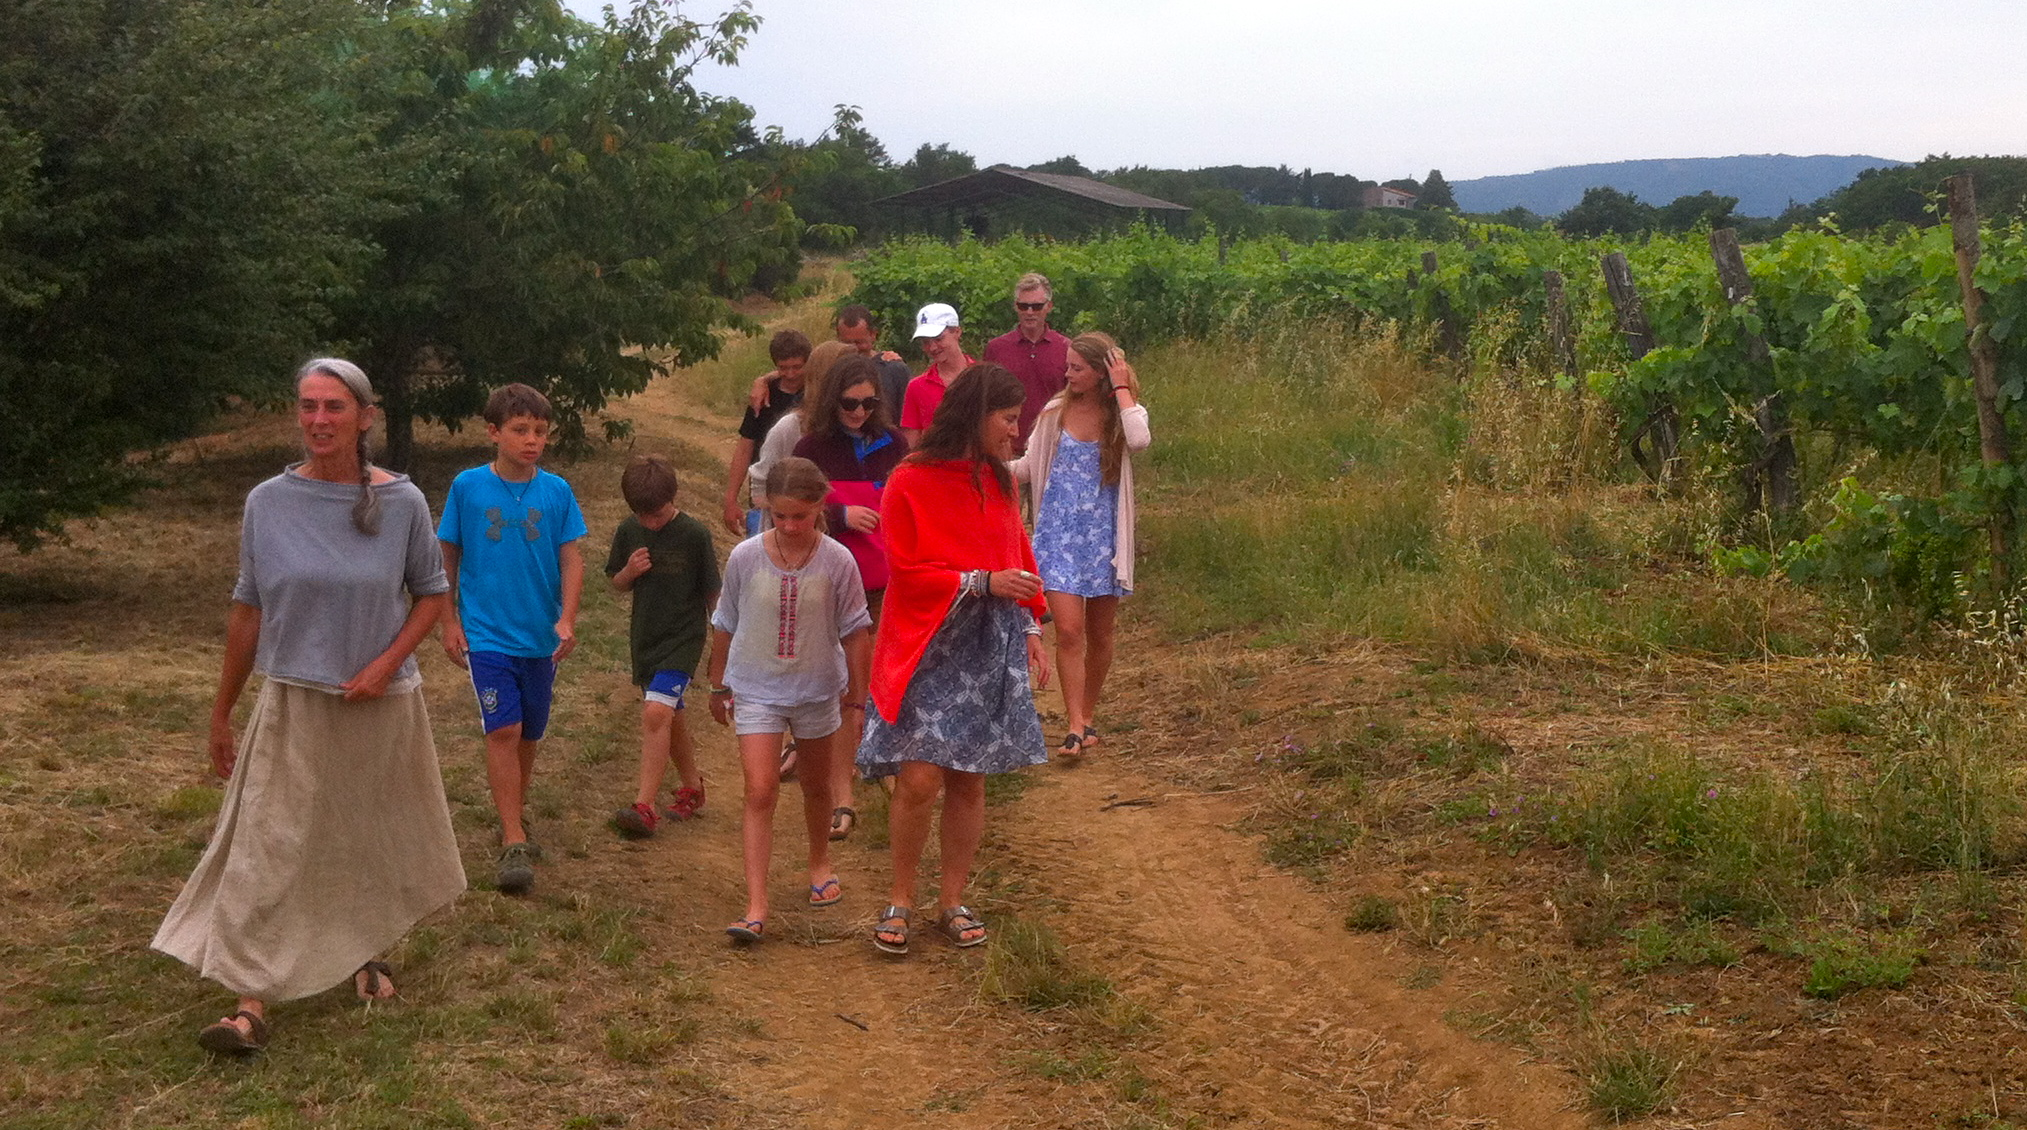 Organic and bio-dynamic wine making in Sovana. Come and see the winery and vineyards on our  3 Regions BIO-Cycle  tour!